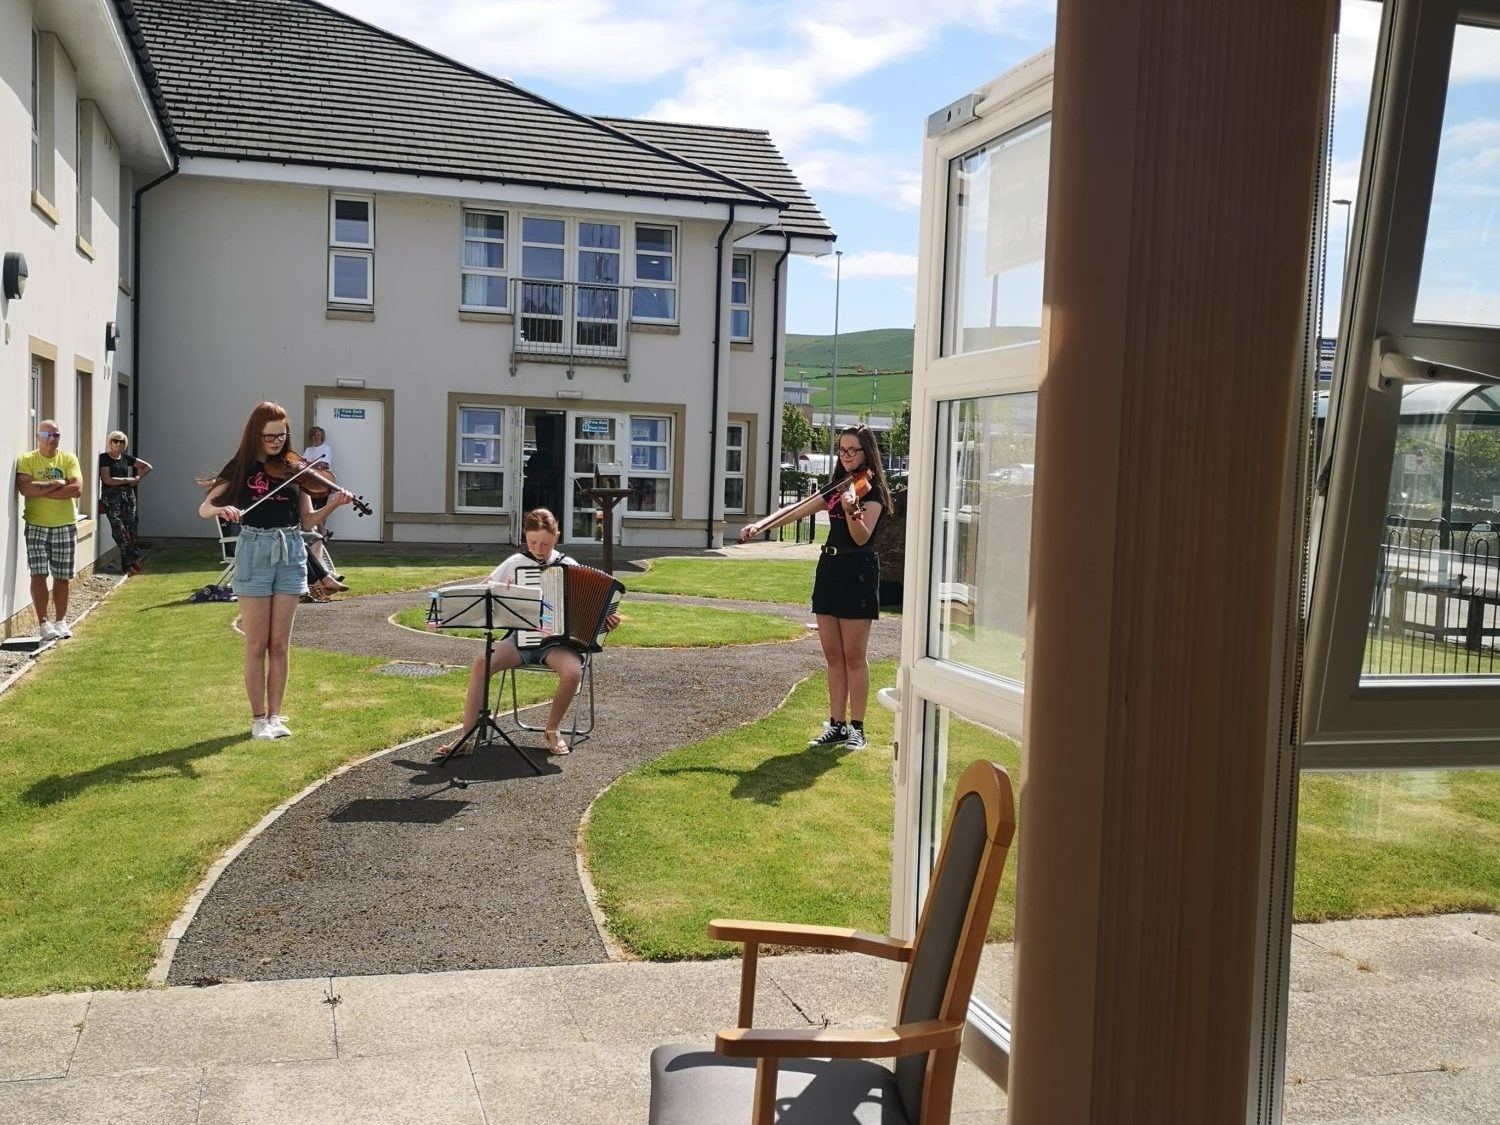 The Country Quines perform garden concert for Balhousie Huntly residents